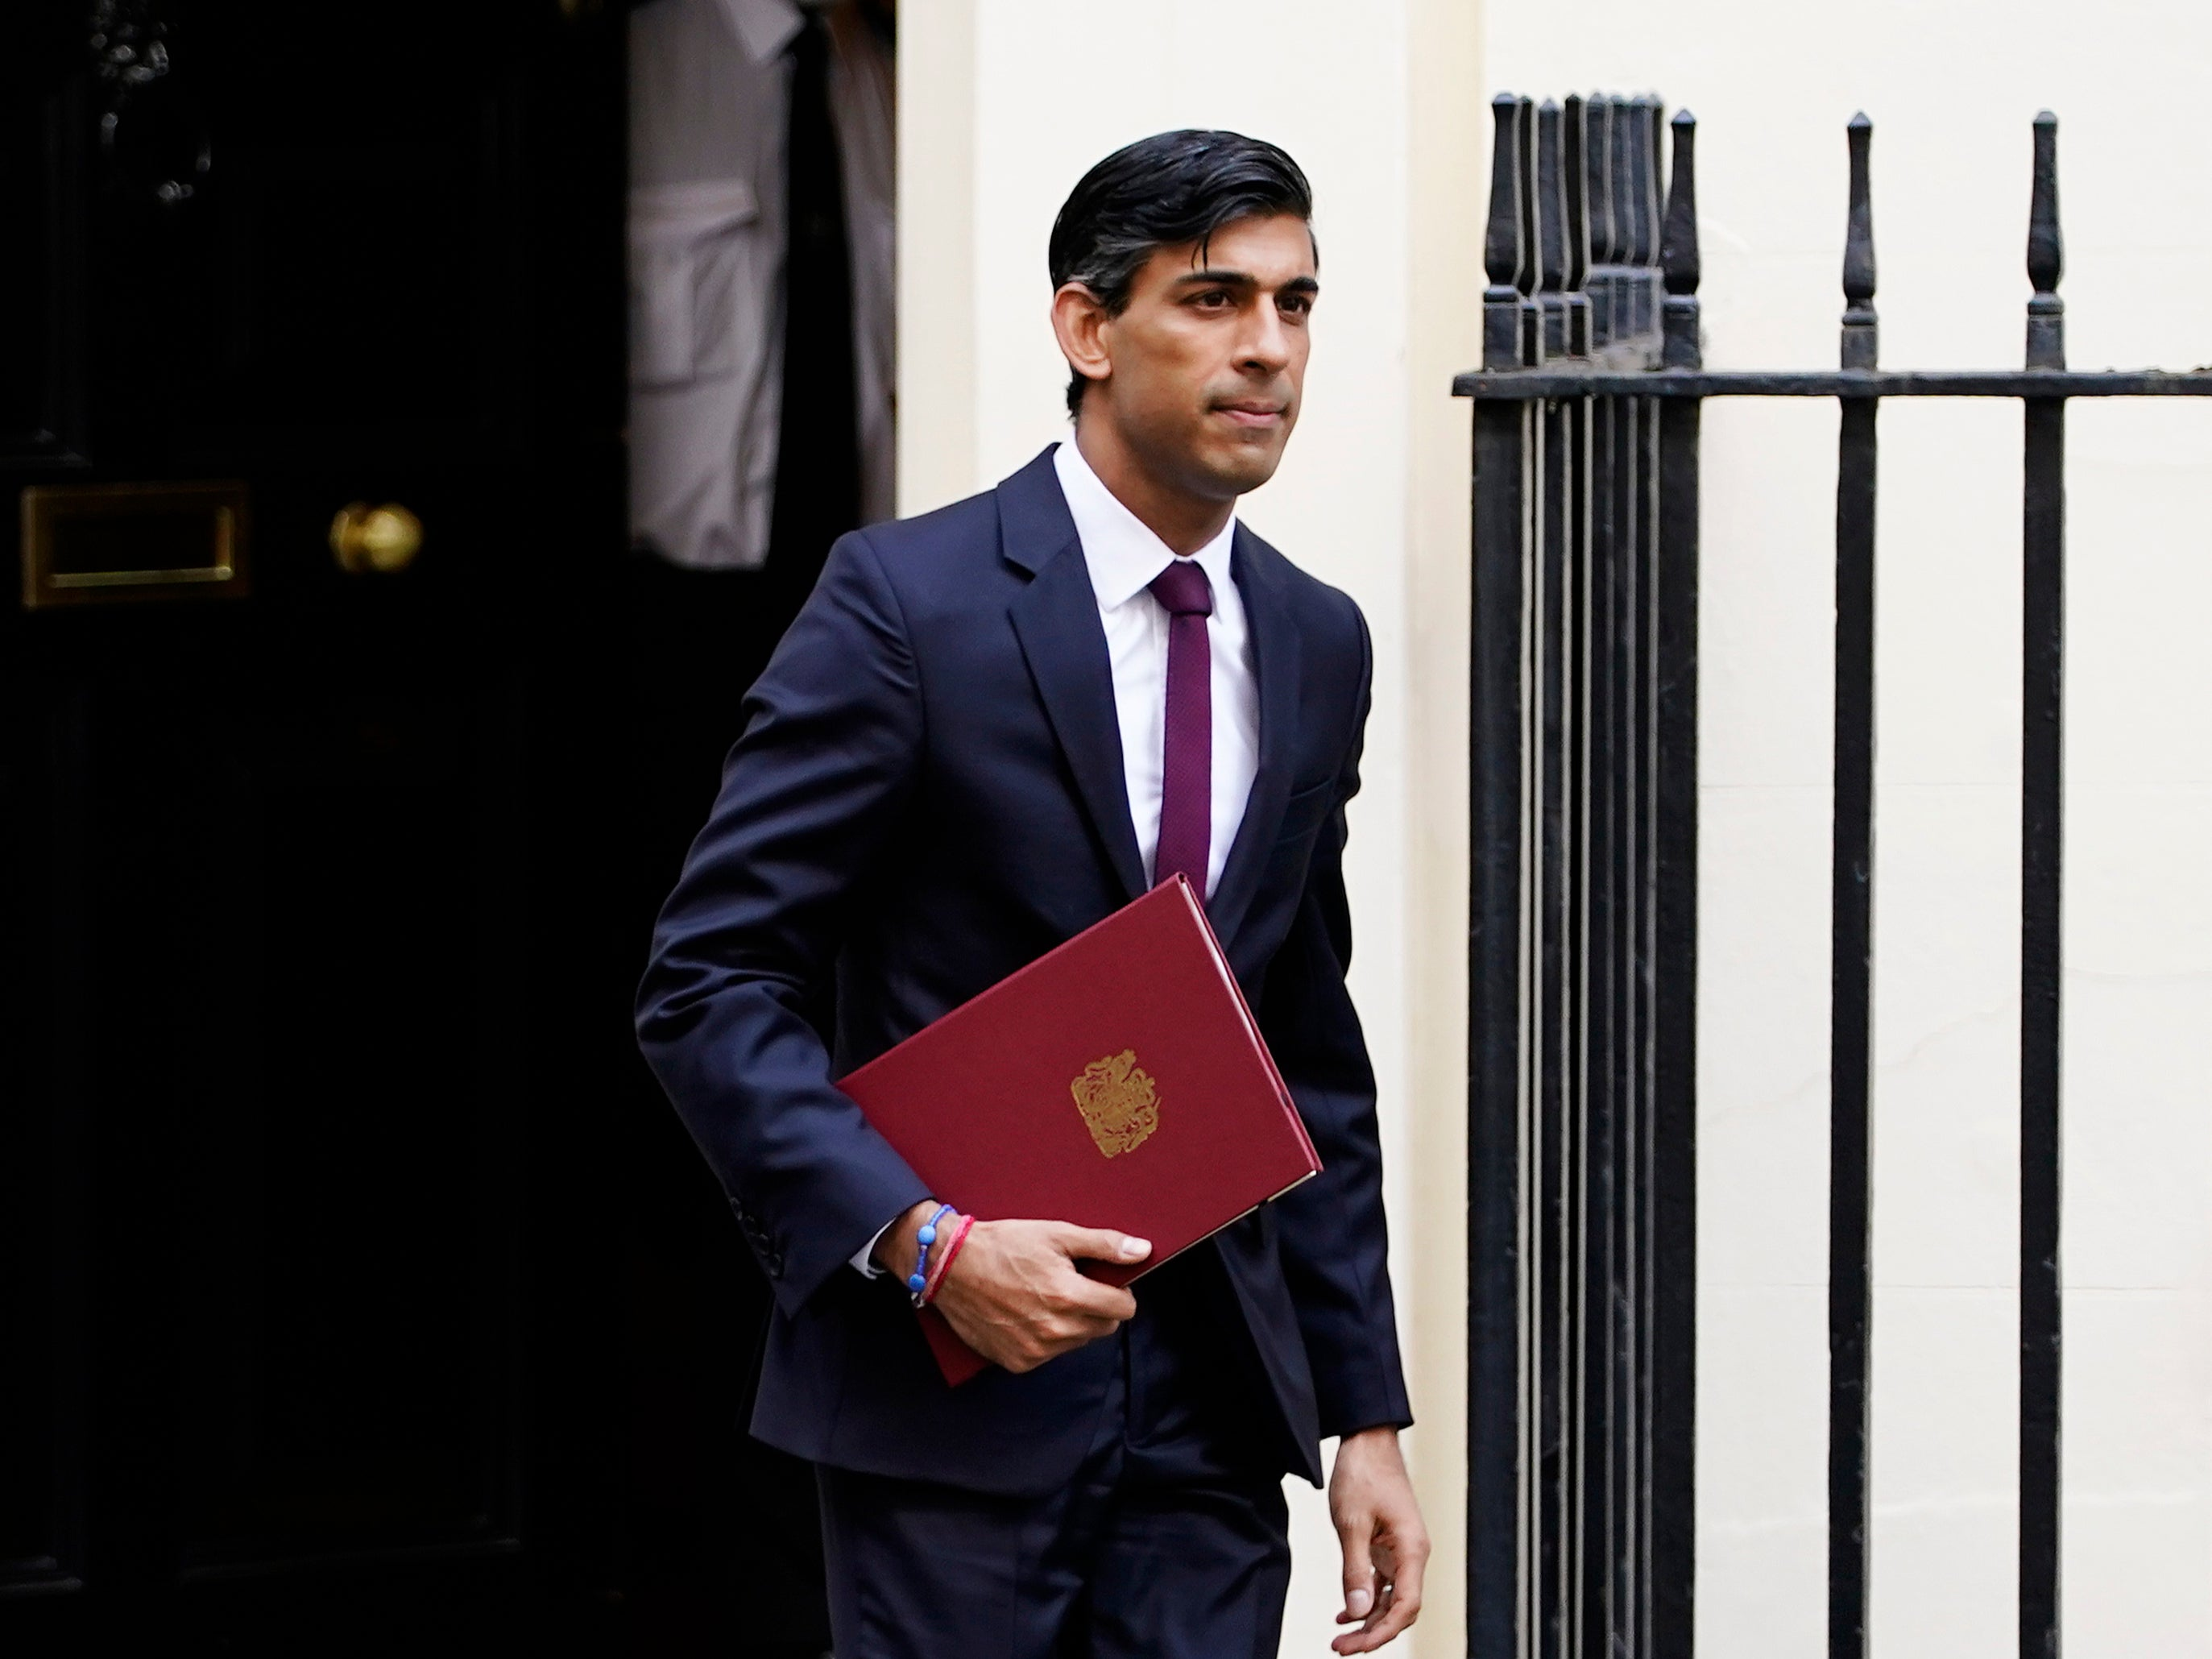 Rishi Sunak's Job Support Scheme took two minutes to unravel | Tom Peck